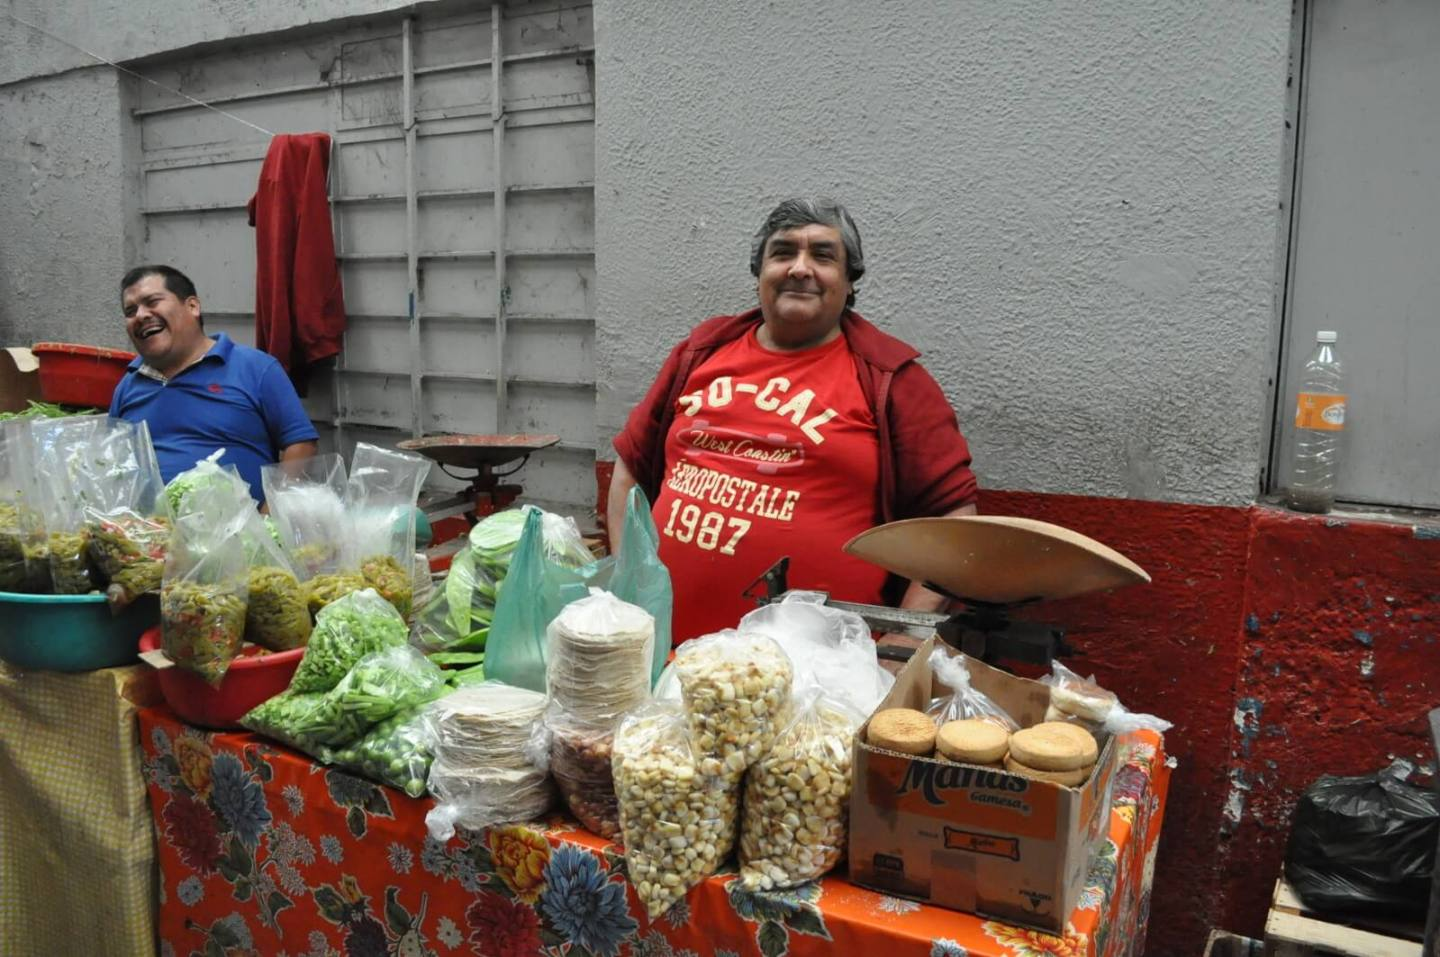 Small retail vendor in mercado de abastos, Guadalajara